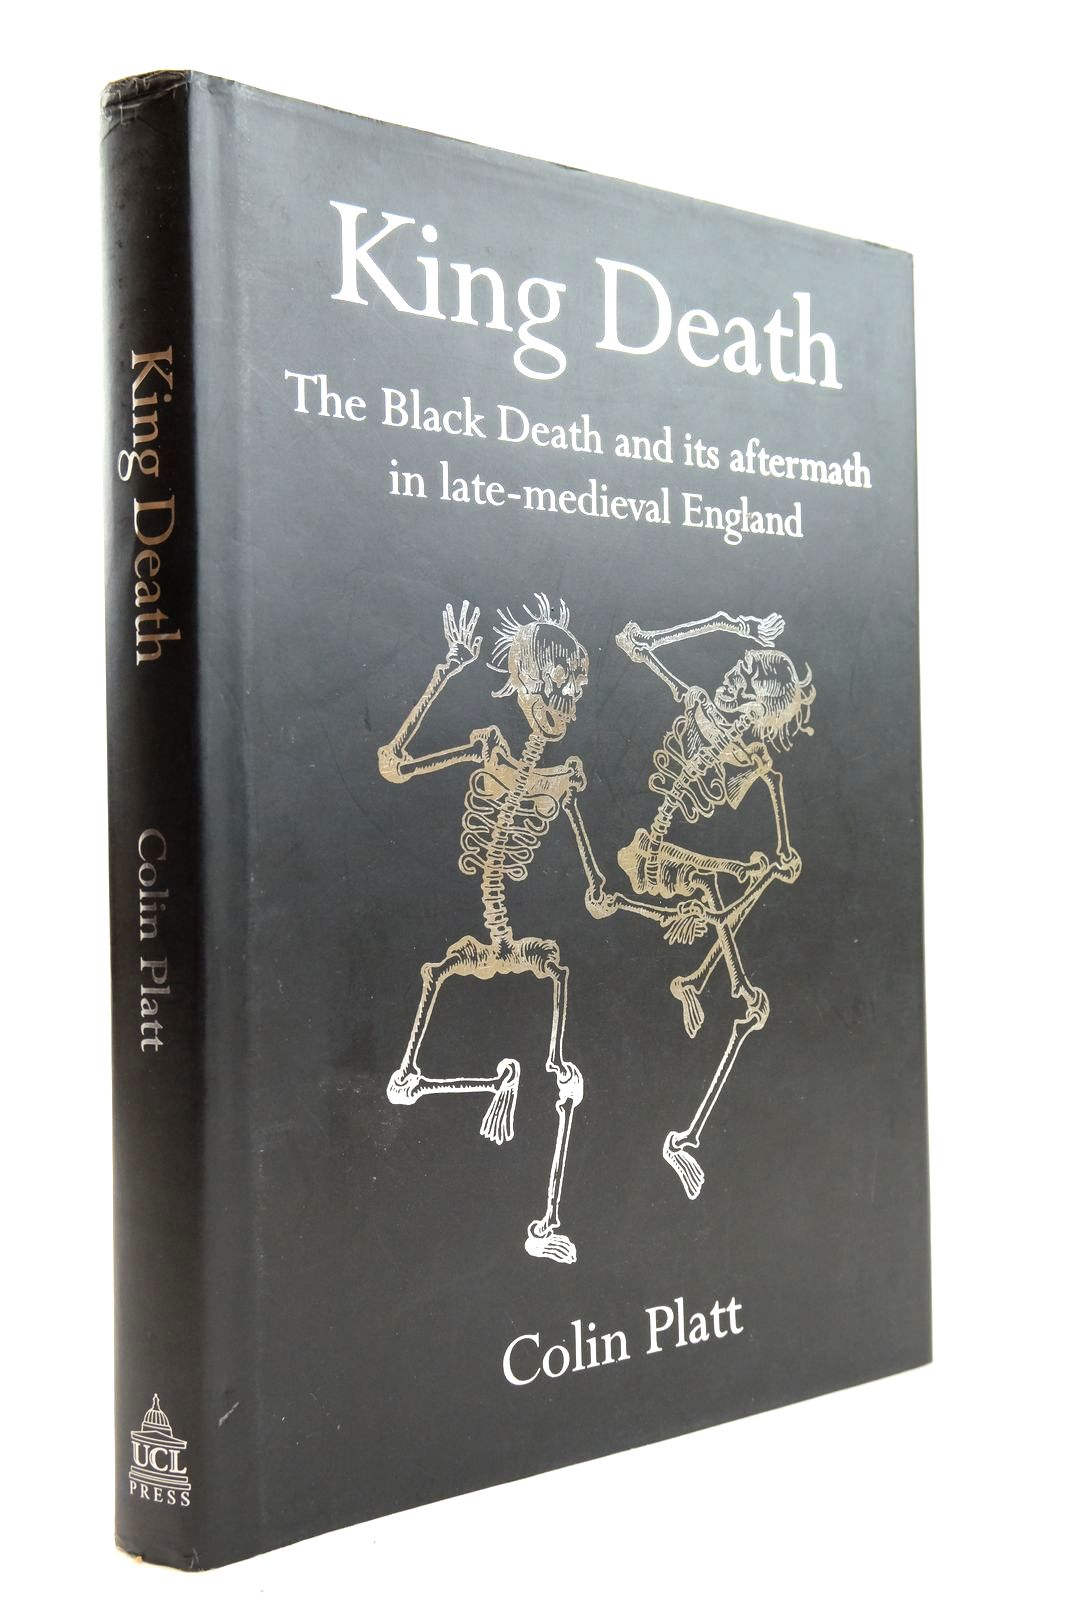 Photo of KING DEATH THE BLACK DEATH AND ITS AFTERMATH IN LATE-MEDIEVAL ENGLAND written by Platt, Colin published by Ucl Press (STOCK CODE: 2132589)  for sale by Stella & Rose's Books